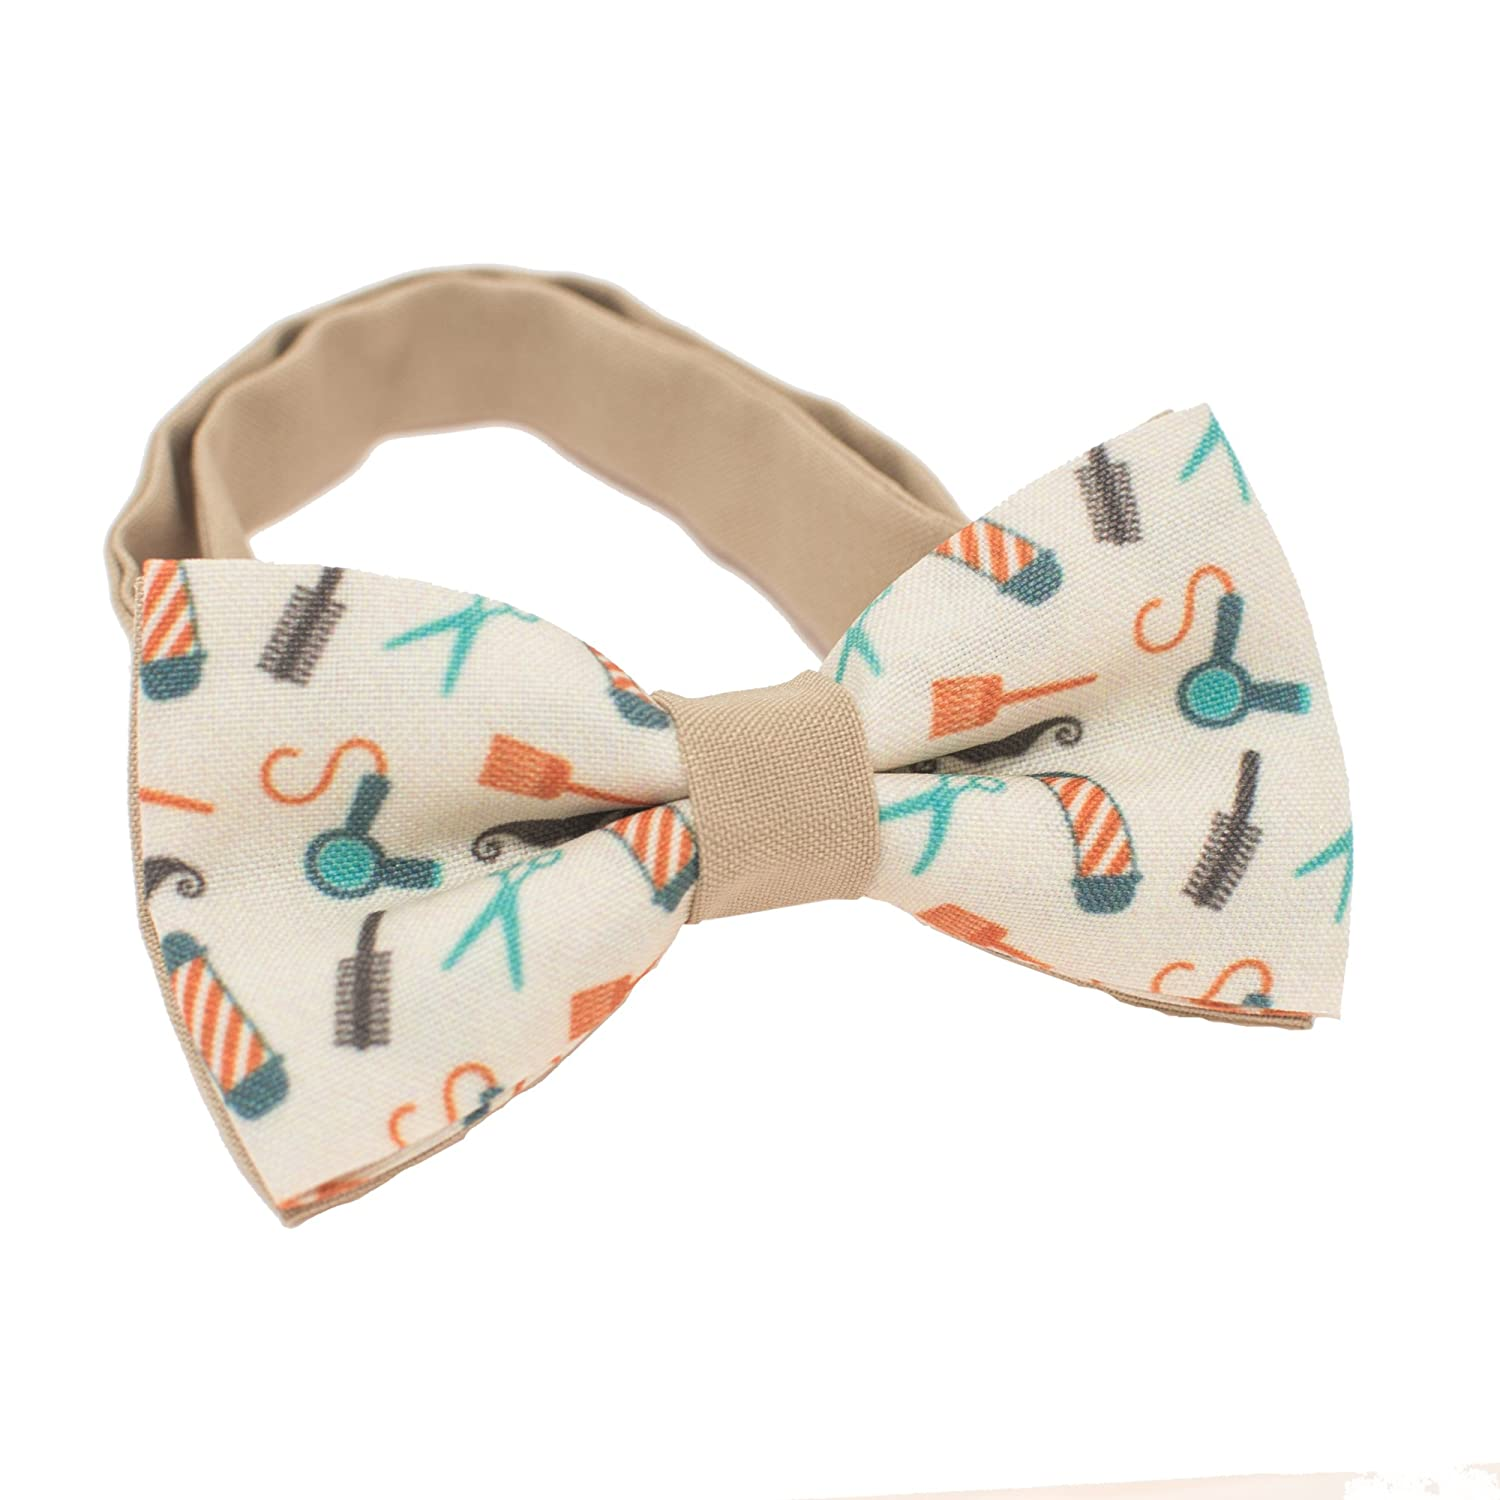 Bow Tie House Bright Purple bow tie with cats pre-tied shape unisex pattern 08340